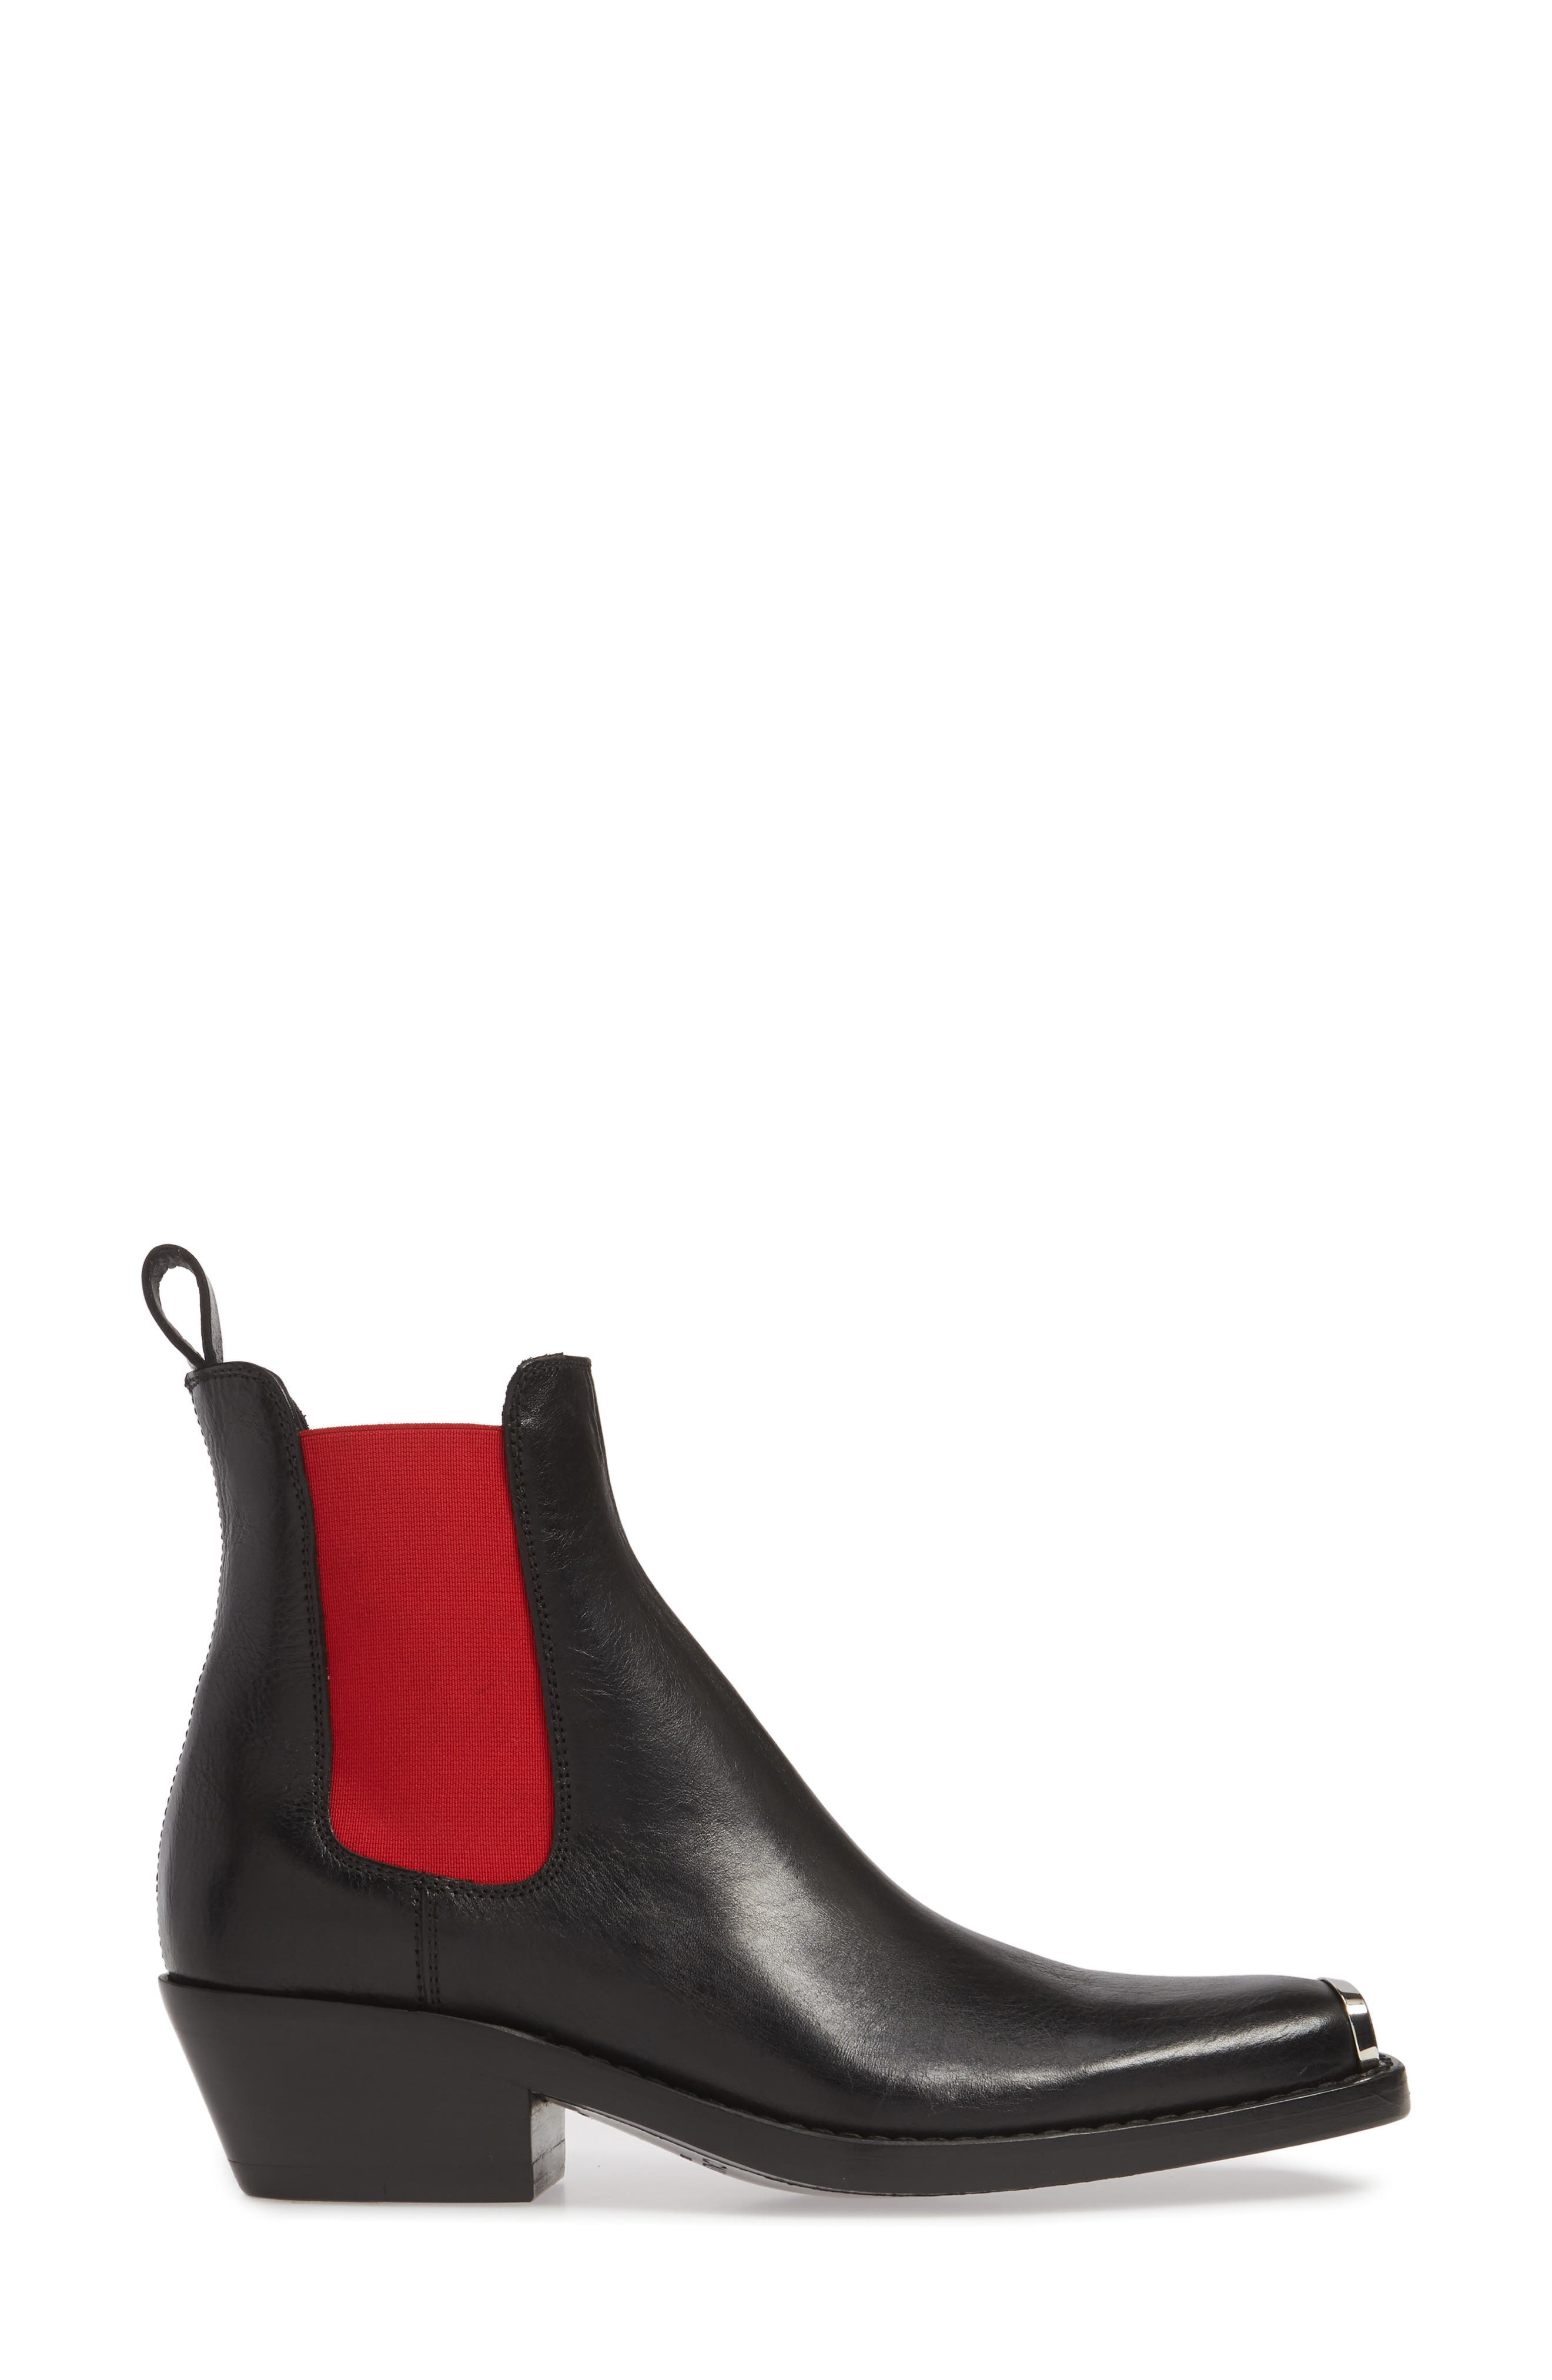 CALVIN KLEIN 205W39NYC, Claire Western Chelsea Boot, Alternate thumbnail 3, color, BLACK/ RED